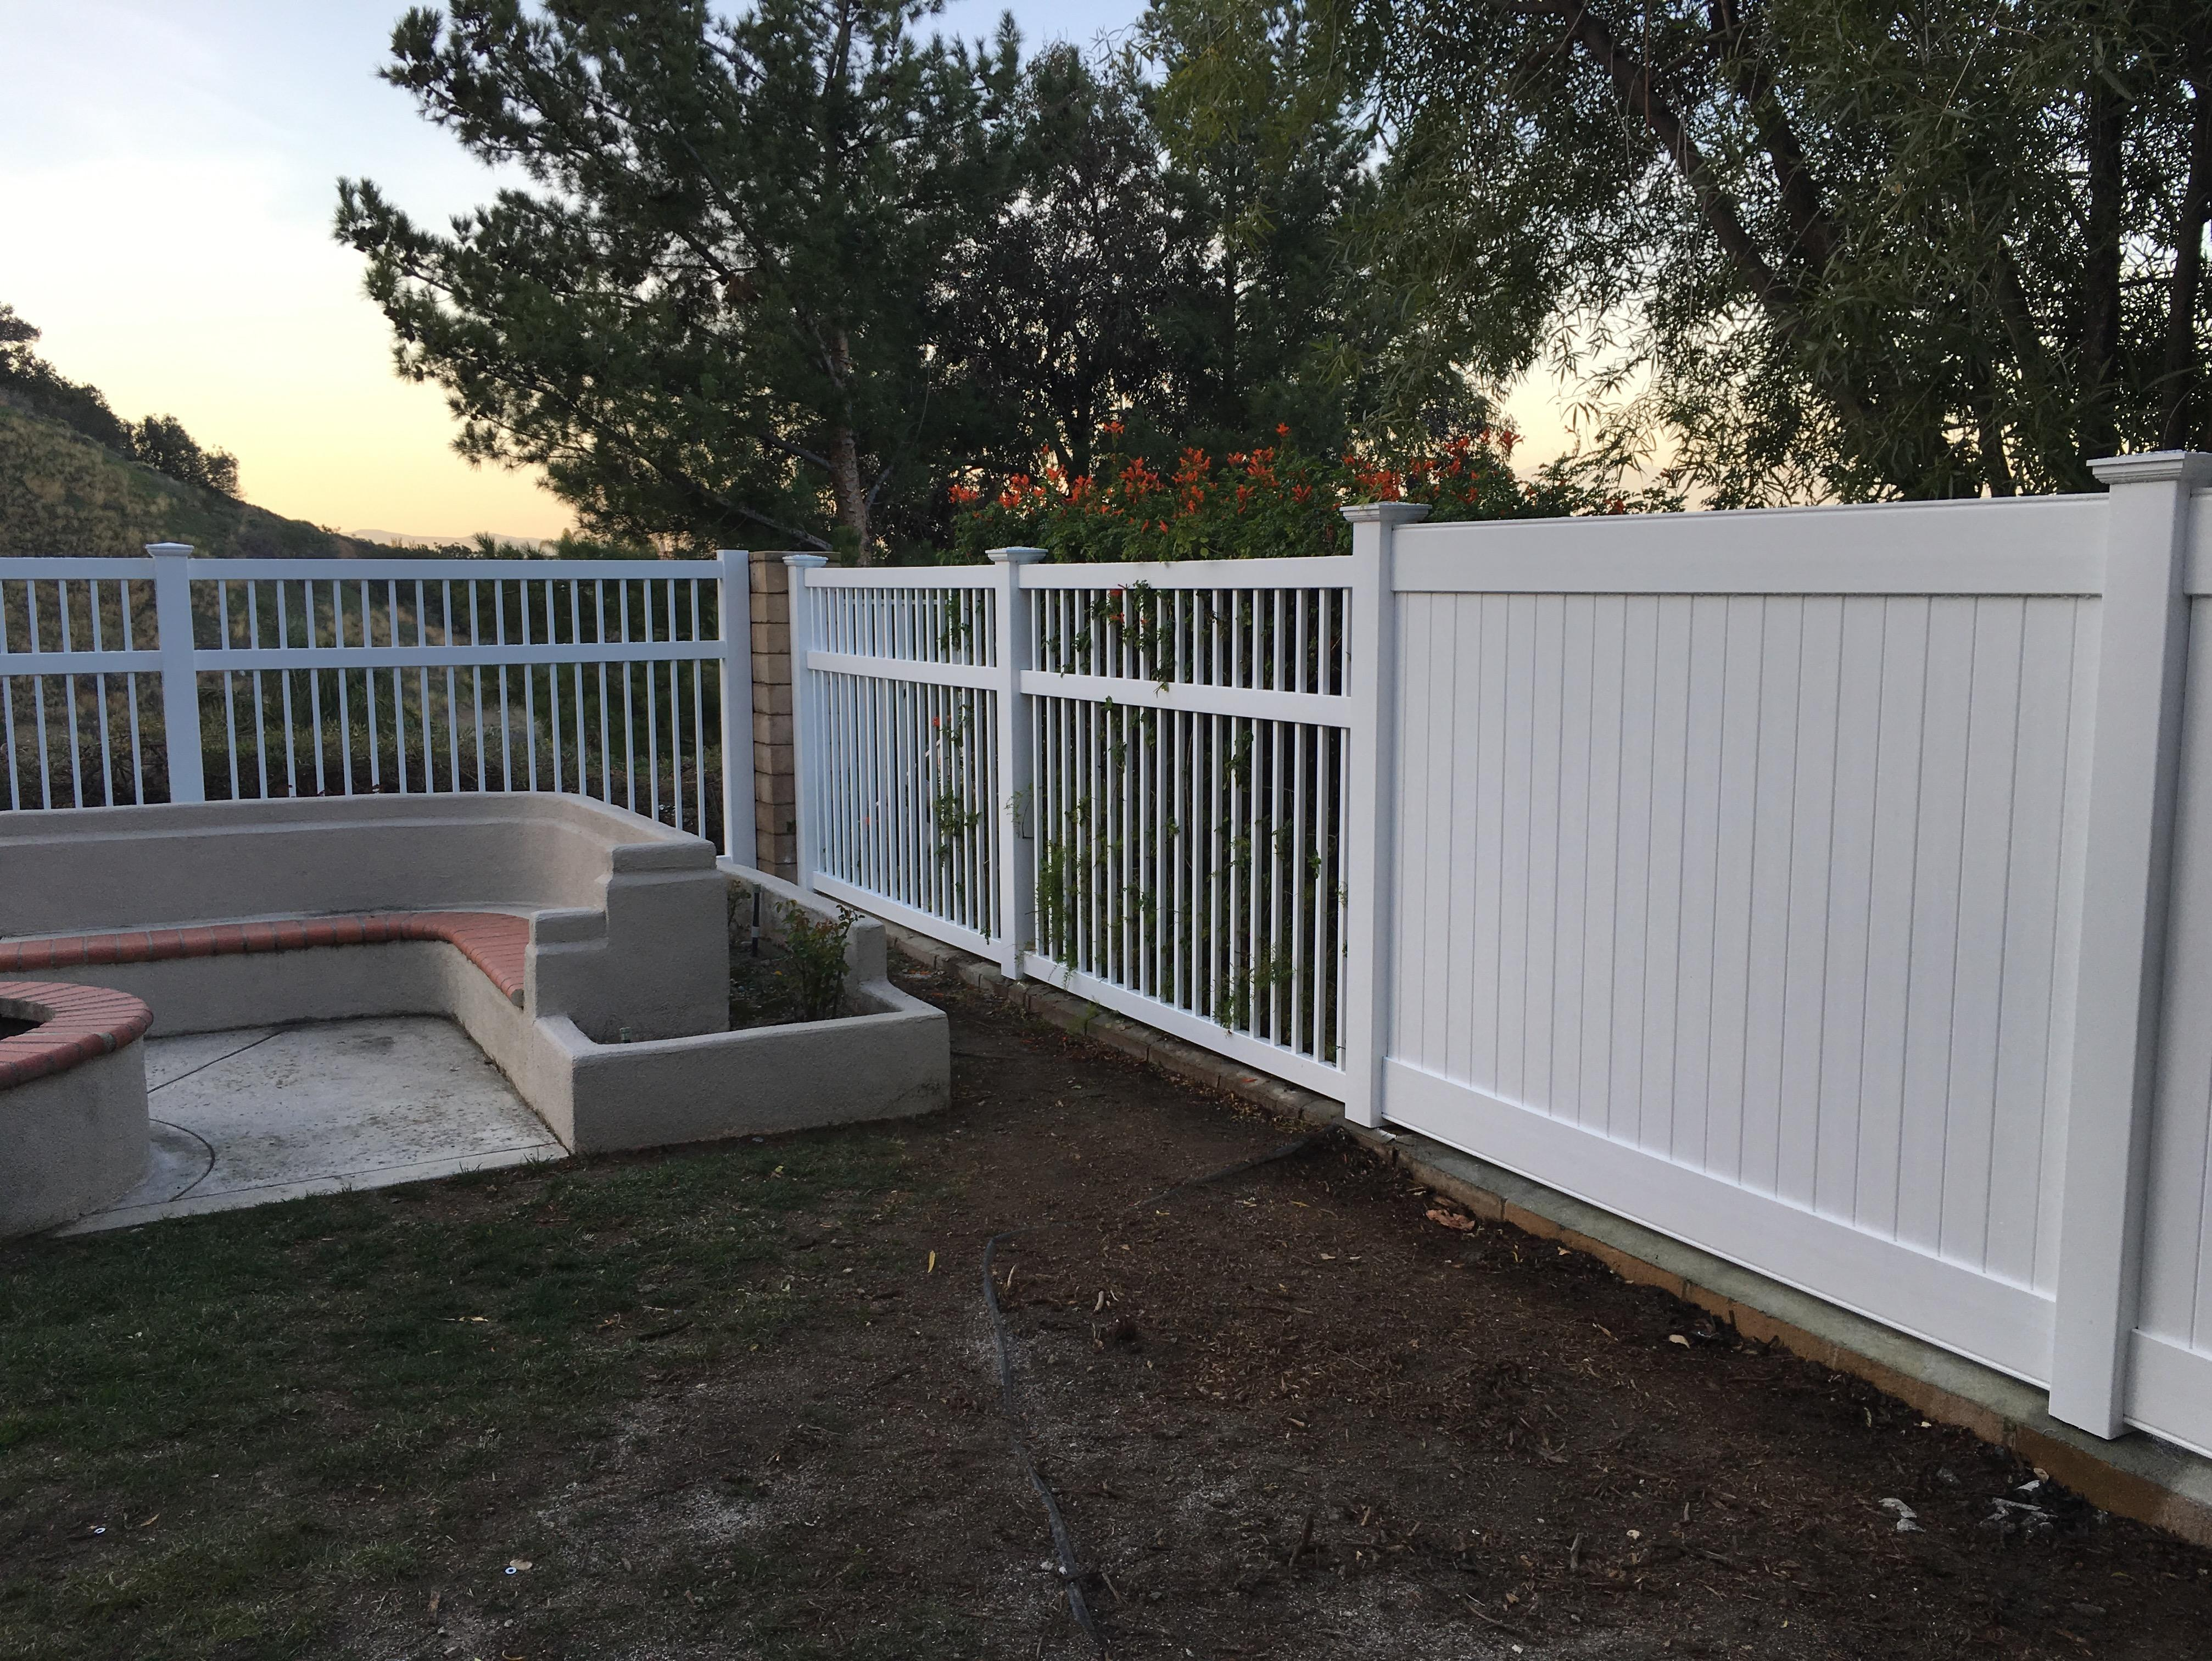 3t Fence Coupons Near Me In Murrieta Ca 92562 8coupons